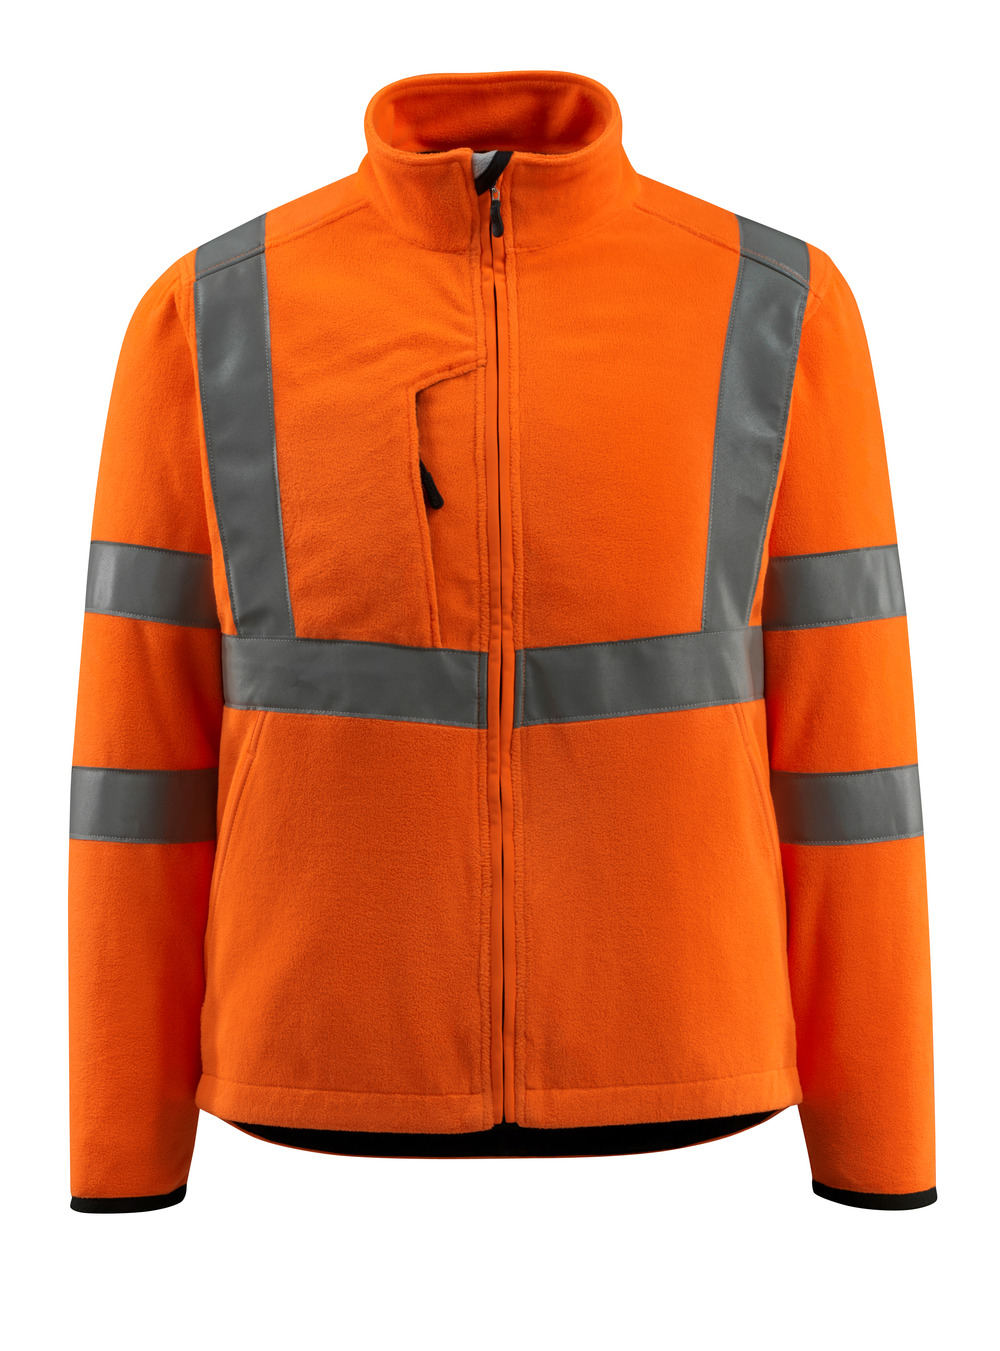 15903-270-14 Fleece Jacket - hi-vis orange